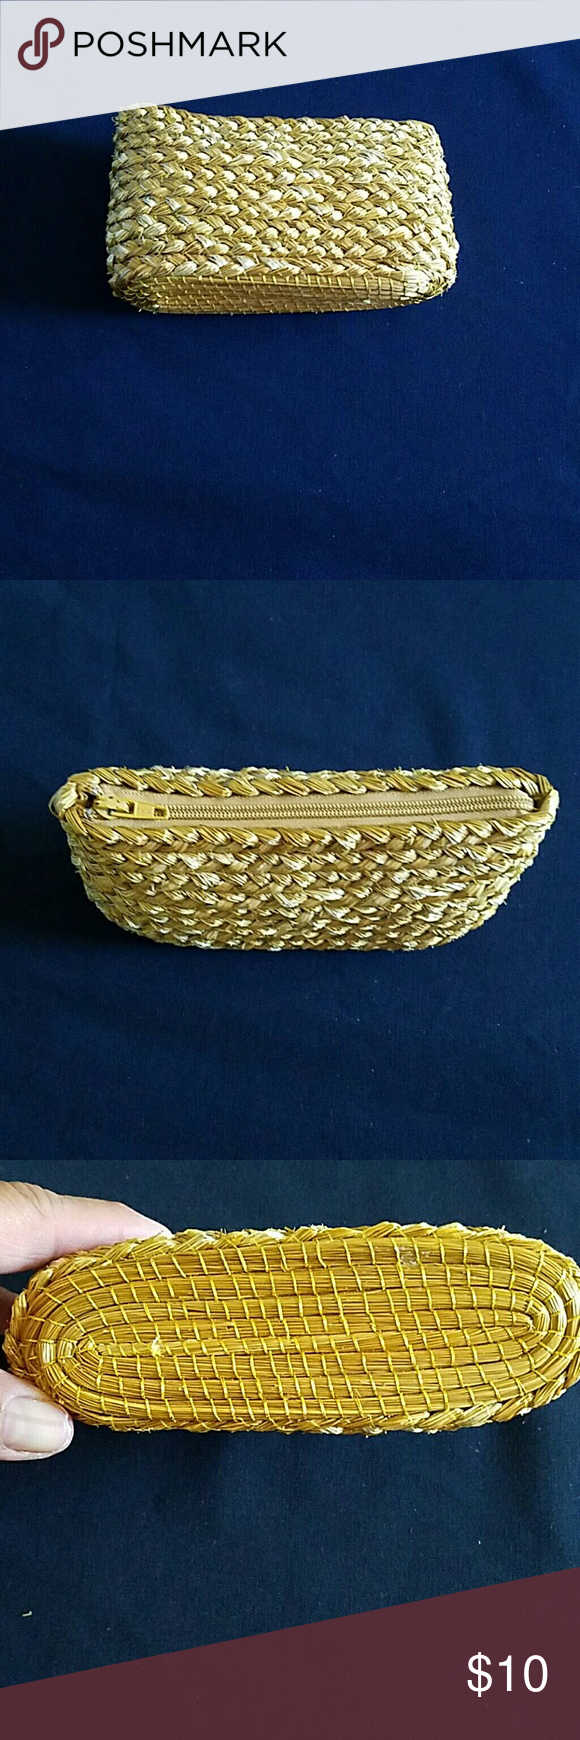 """Adorable woven straw change purse This adorable straw change or knick knack purse is woven very solidly and it stands up alone. It zips for easy access. Dimensions are 6""""wide 3.5"""" high. All measurements are approximate and taken flat.  From a smoke free and pet free home. Would make a cute and unique item for you or a friend as a gift! Bags"""